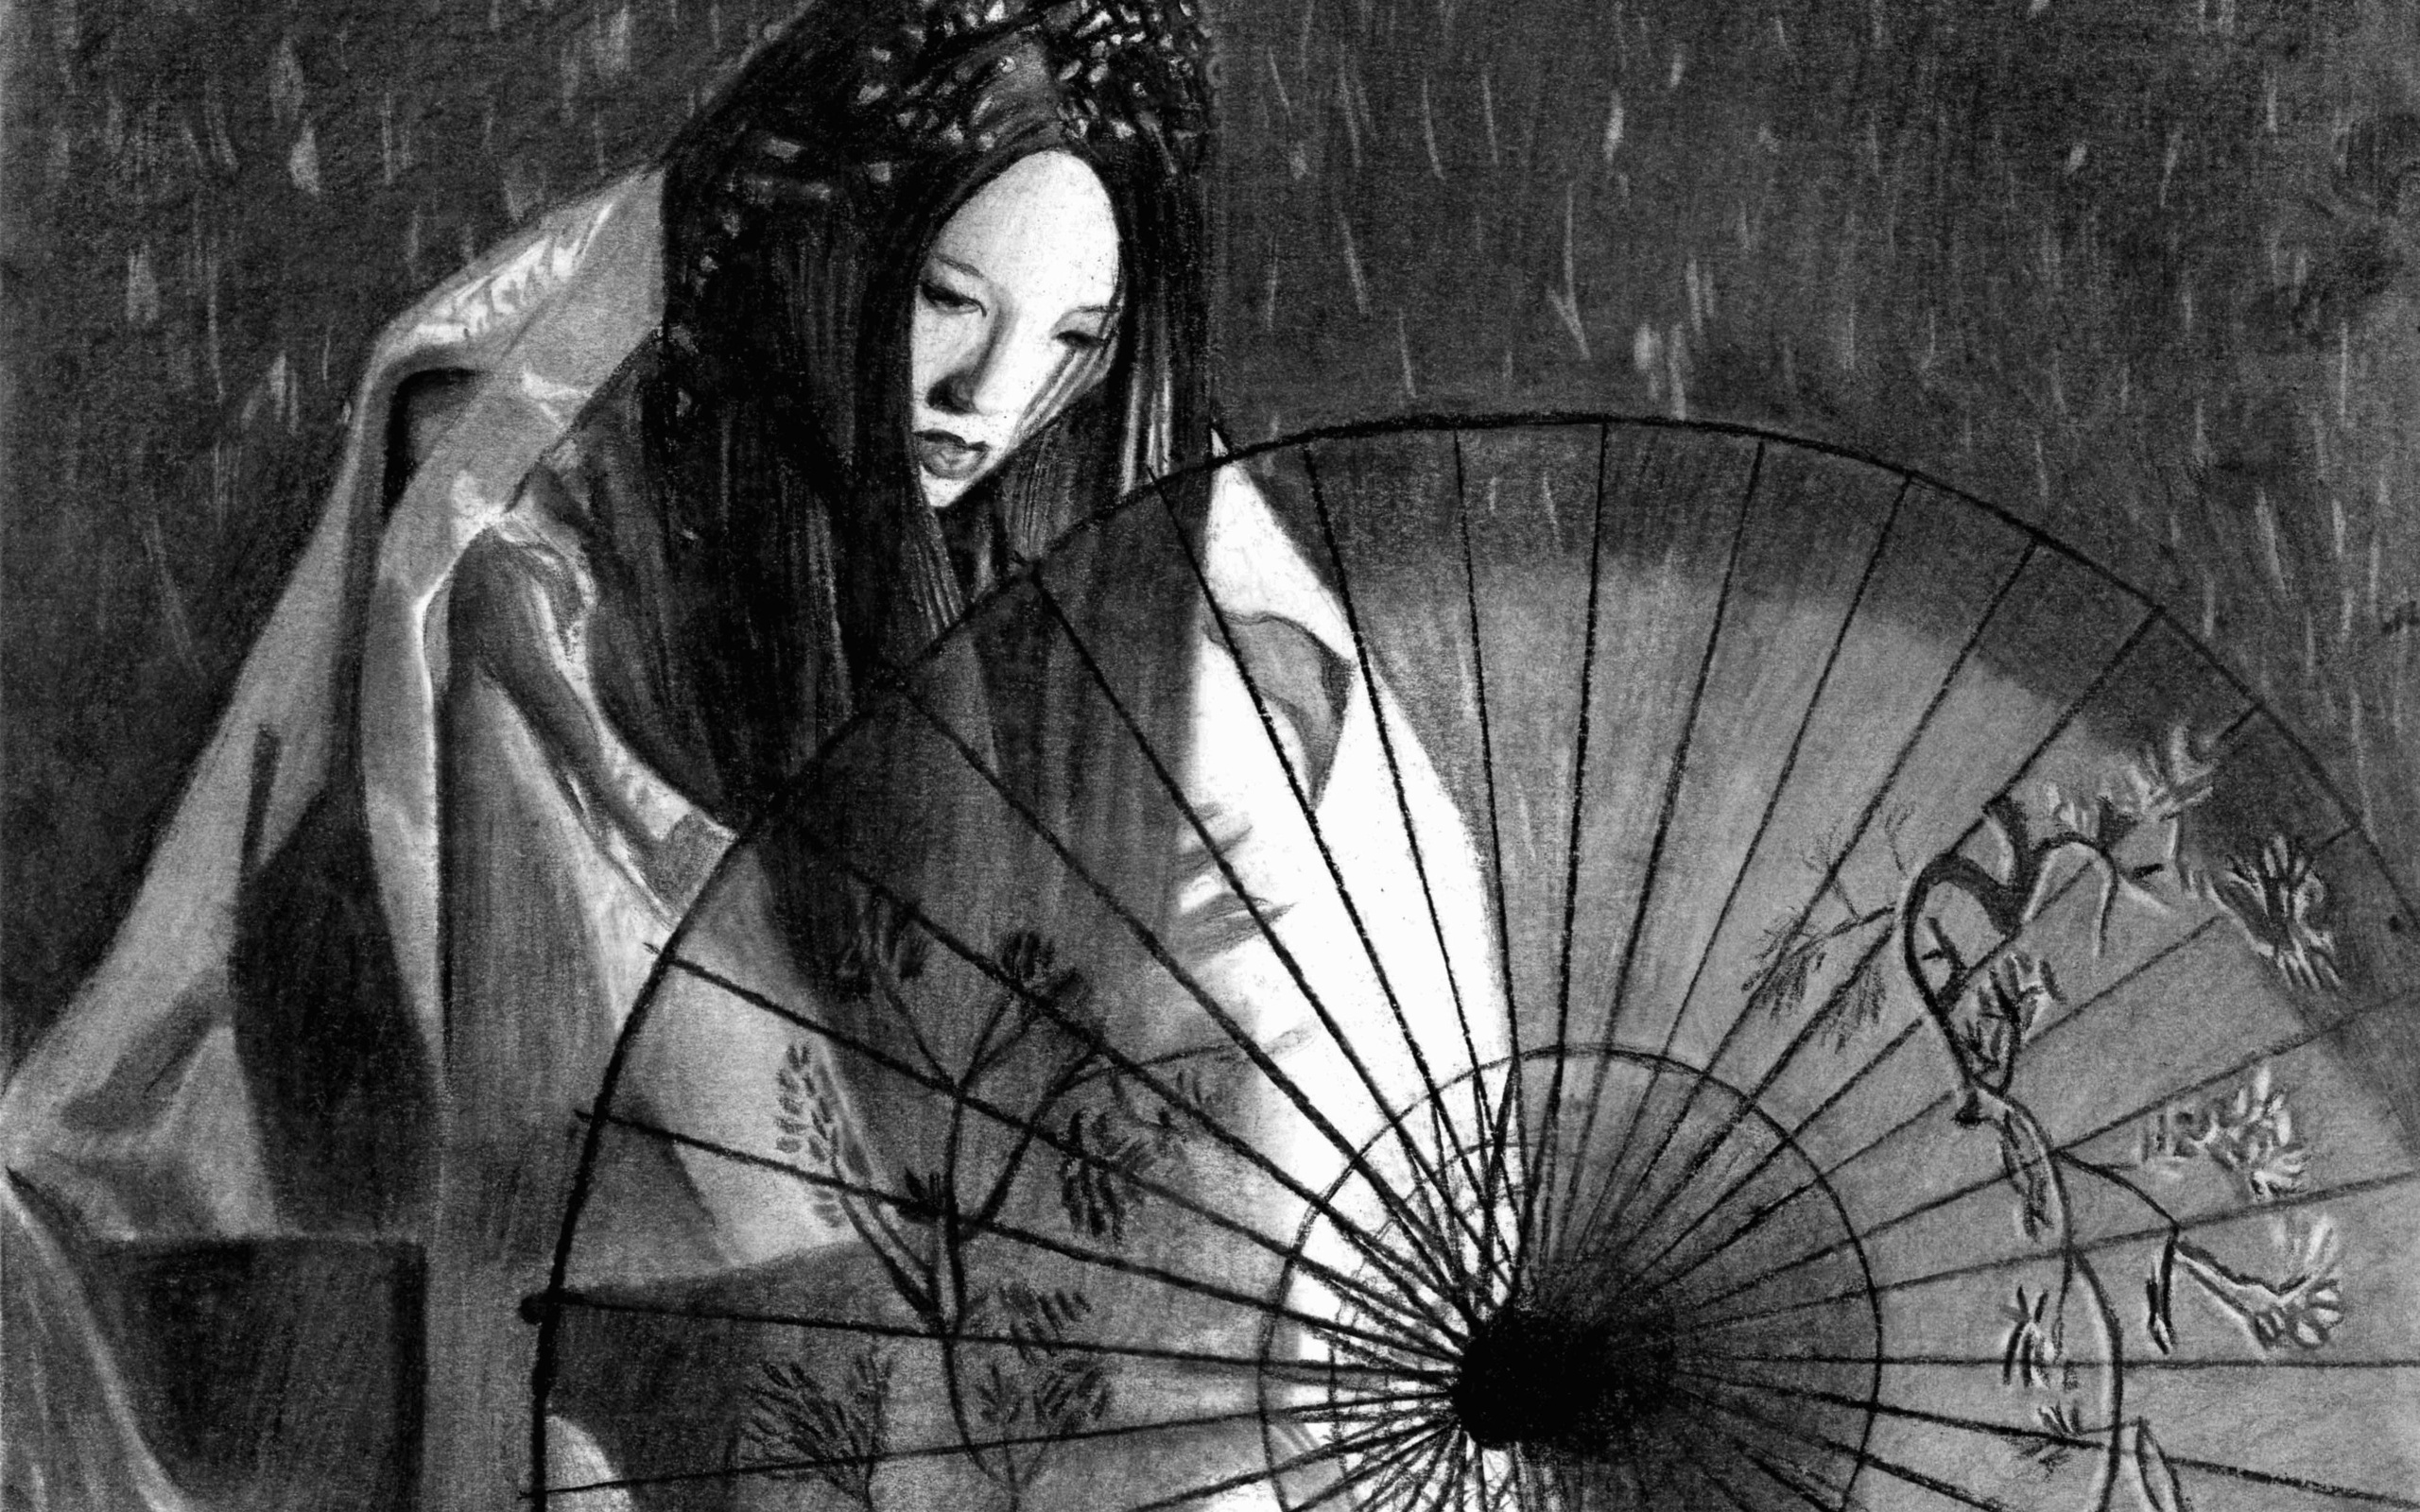 Taylor shemale black and white japanese art hong